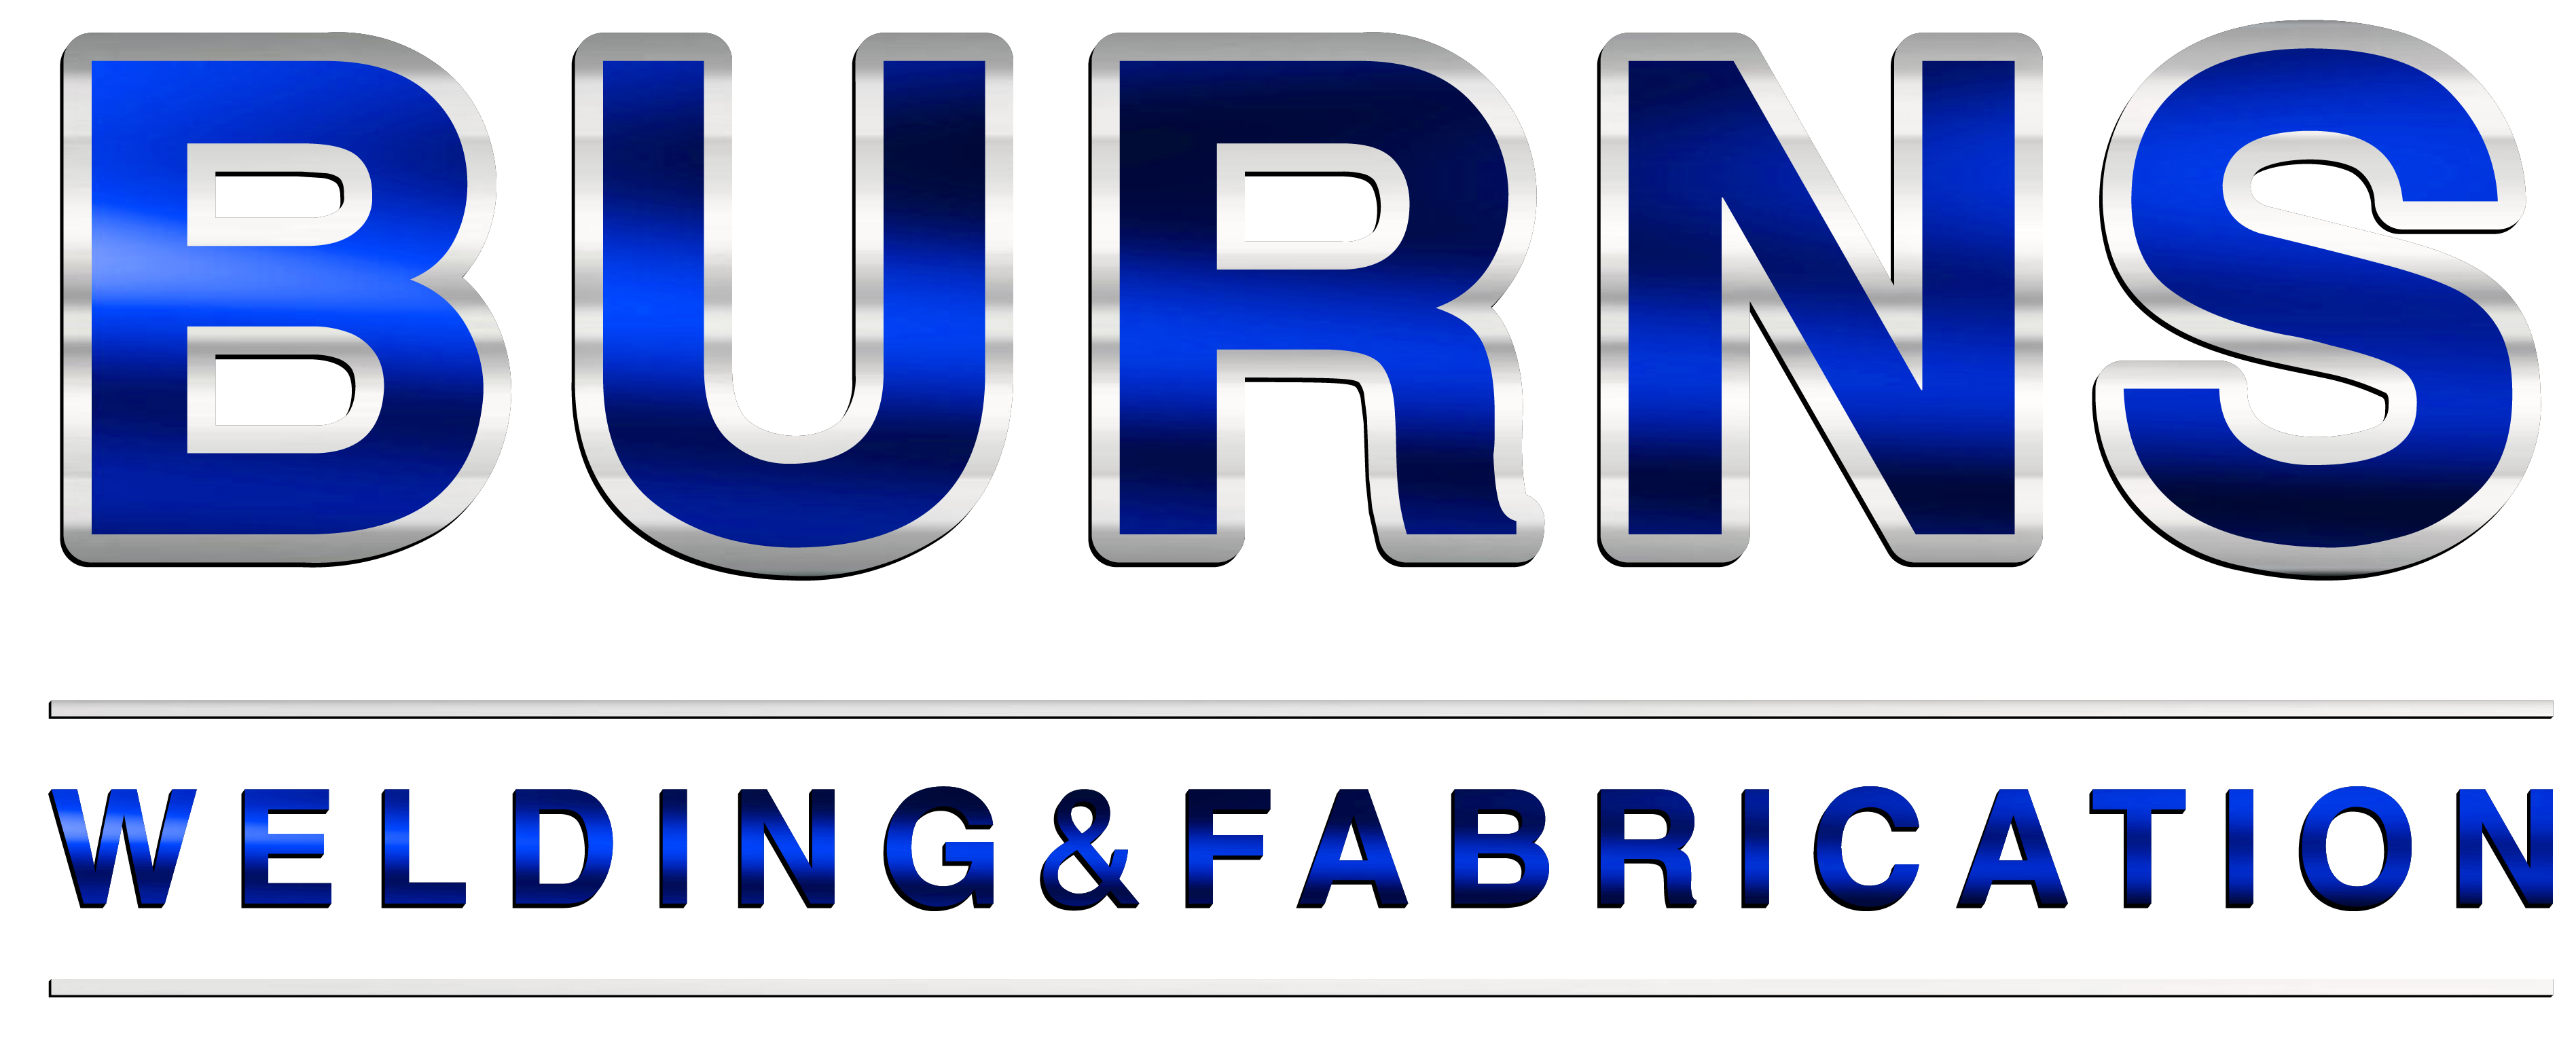 Burns Welding and Fabrication